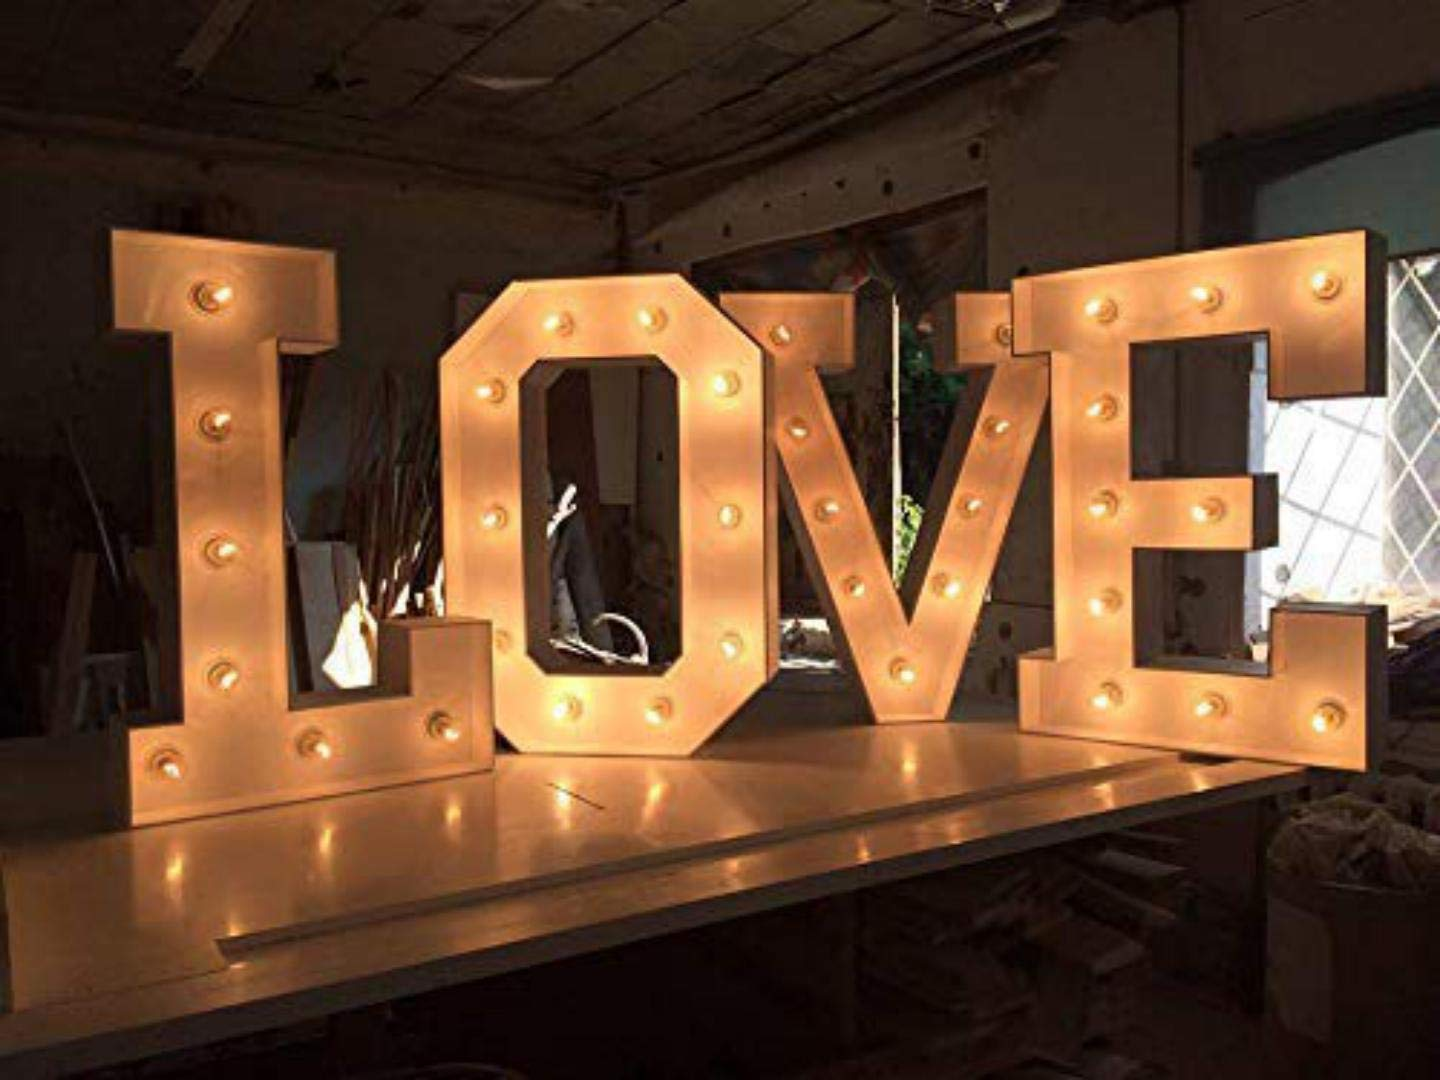 Custom Large Marquee Sing Baby Light Up Sign Love Large Marquee Numbers Light Up Sign Love Marquee Letter Lights Wood Letter Lights Amazon Ca Handmade